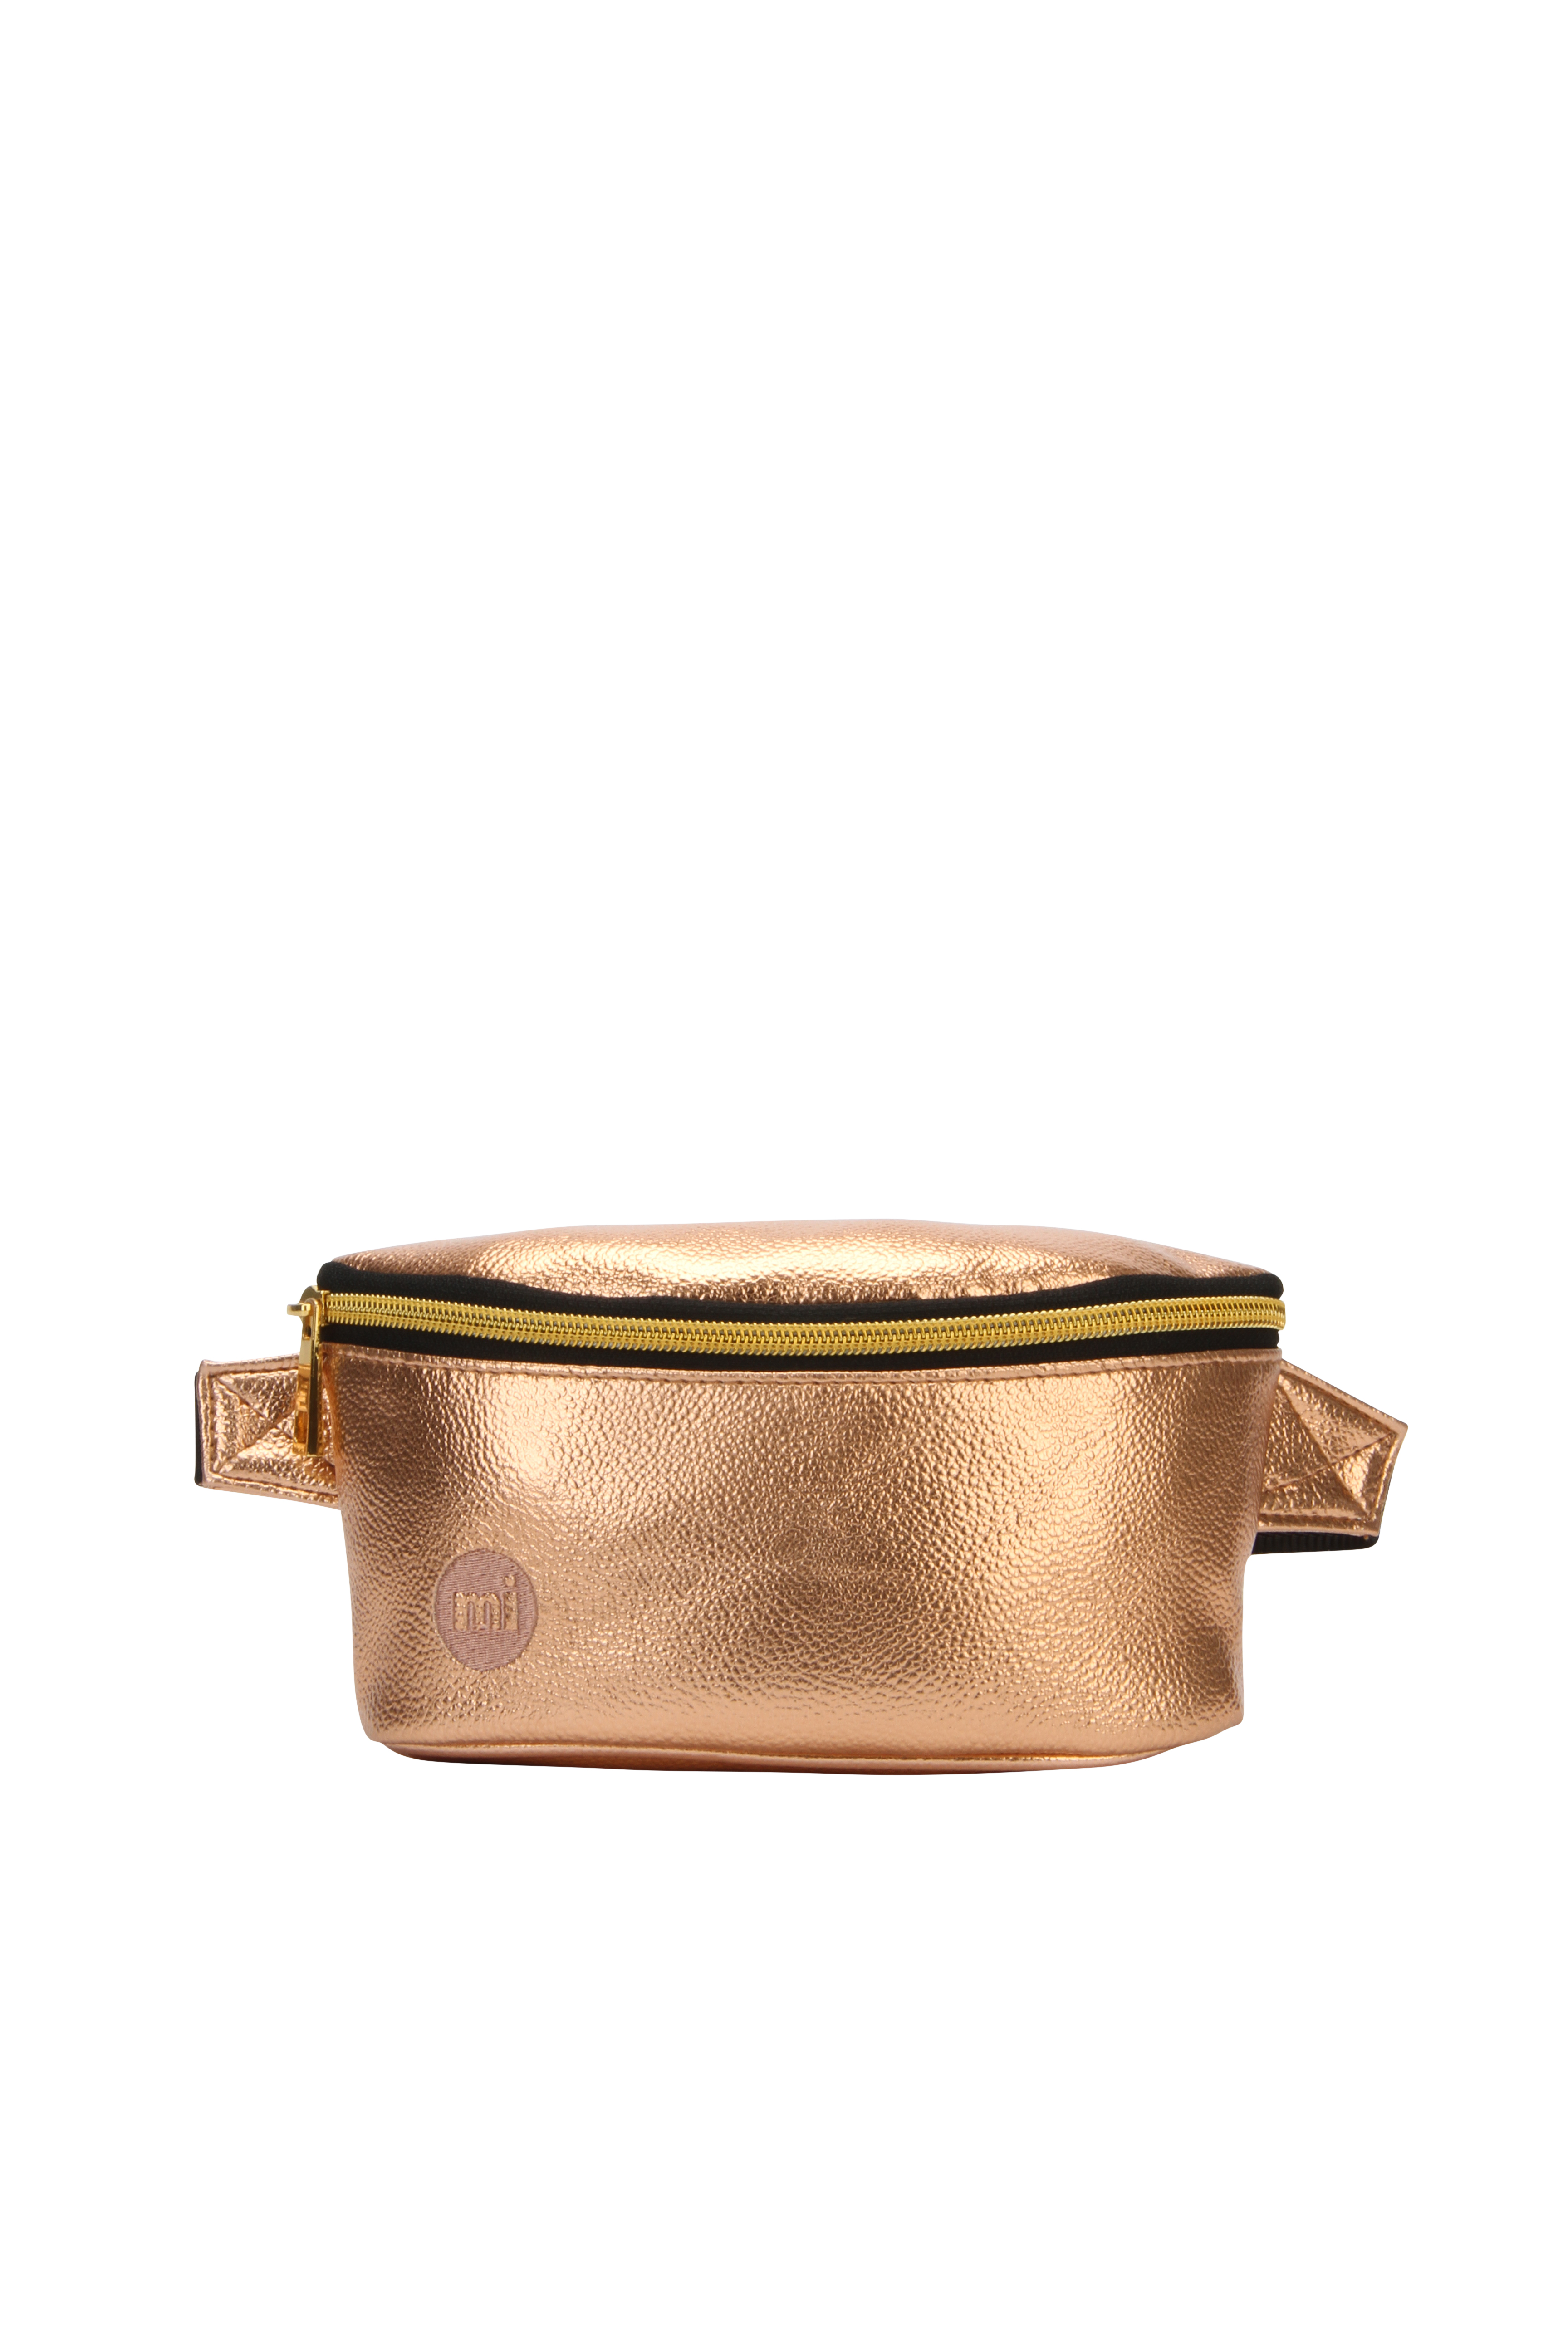 Mi-Pac - Slim Bum - Metallic Rose Gold